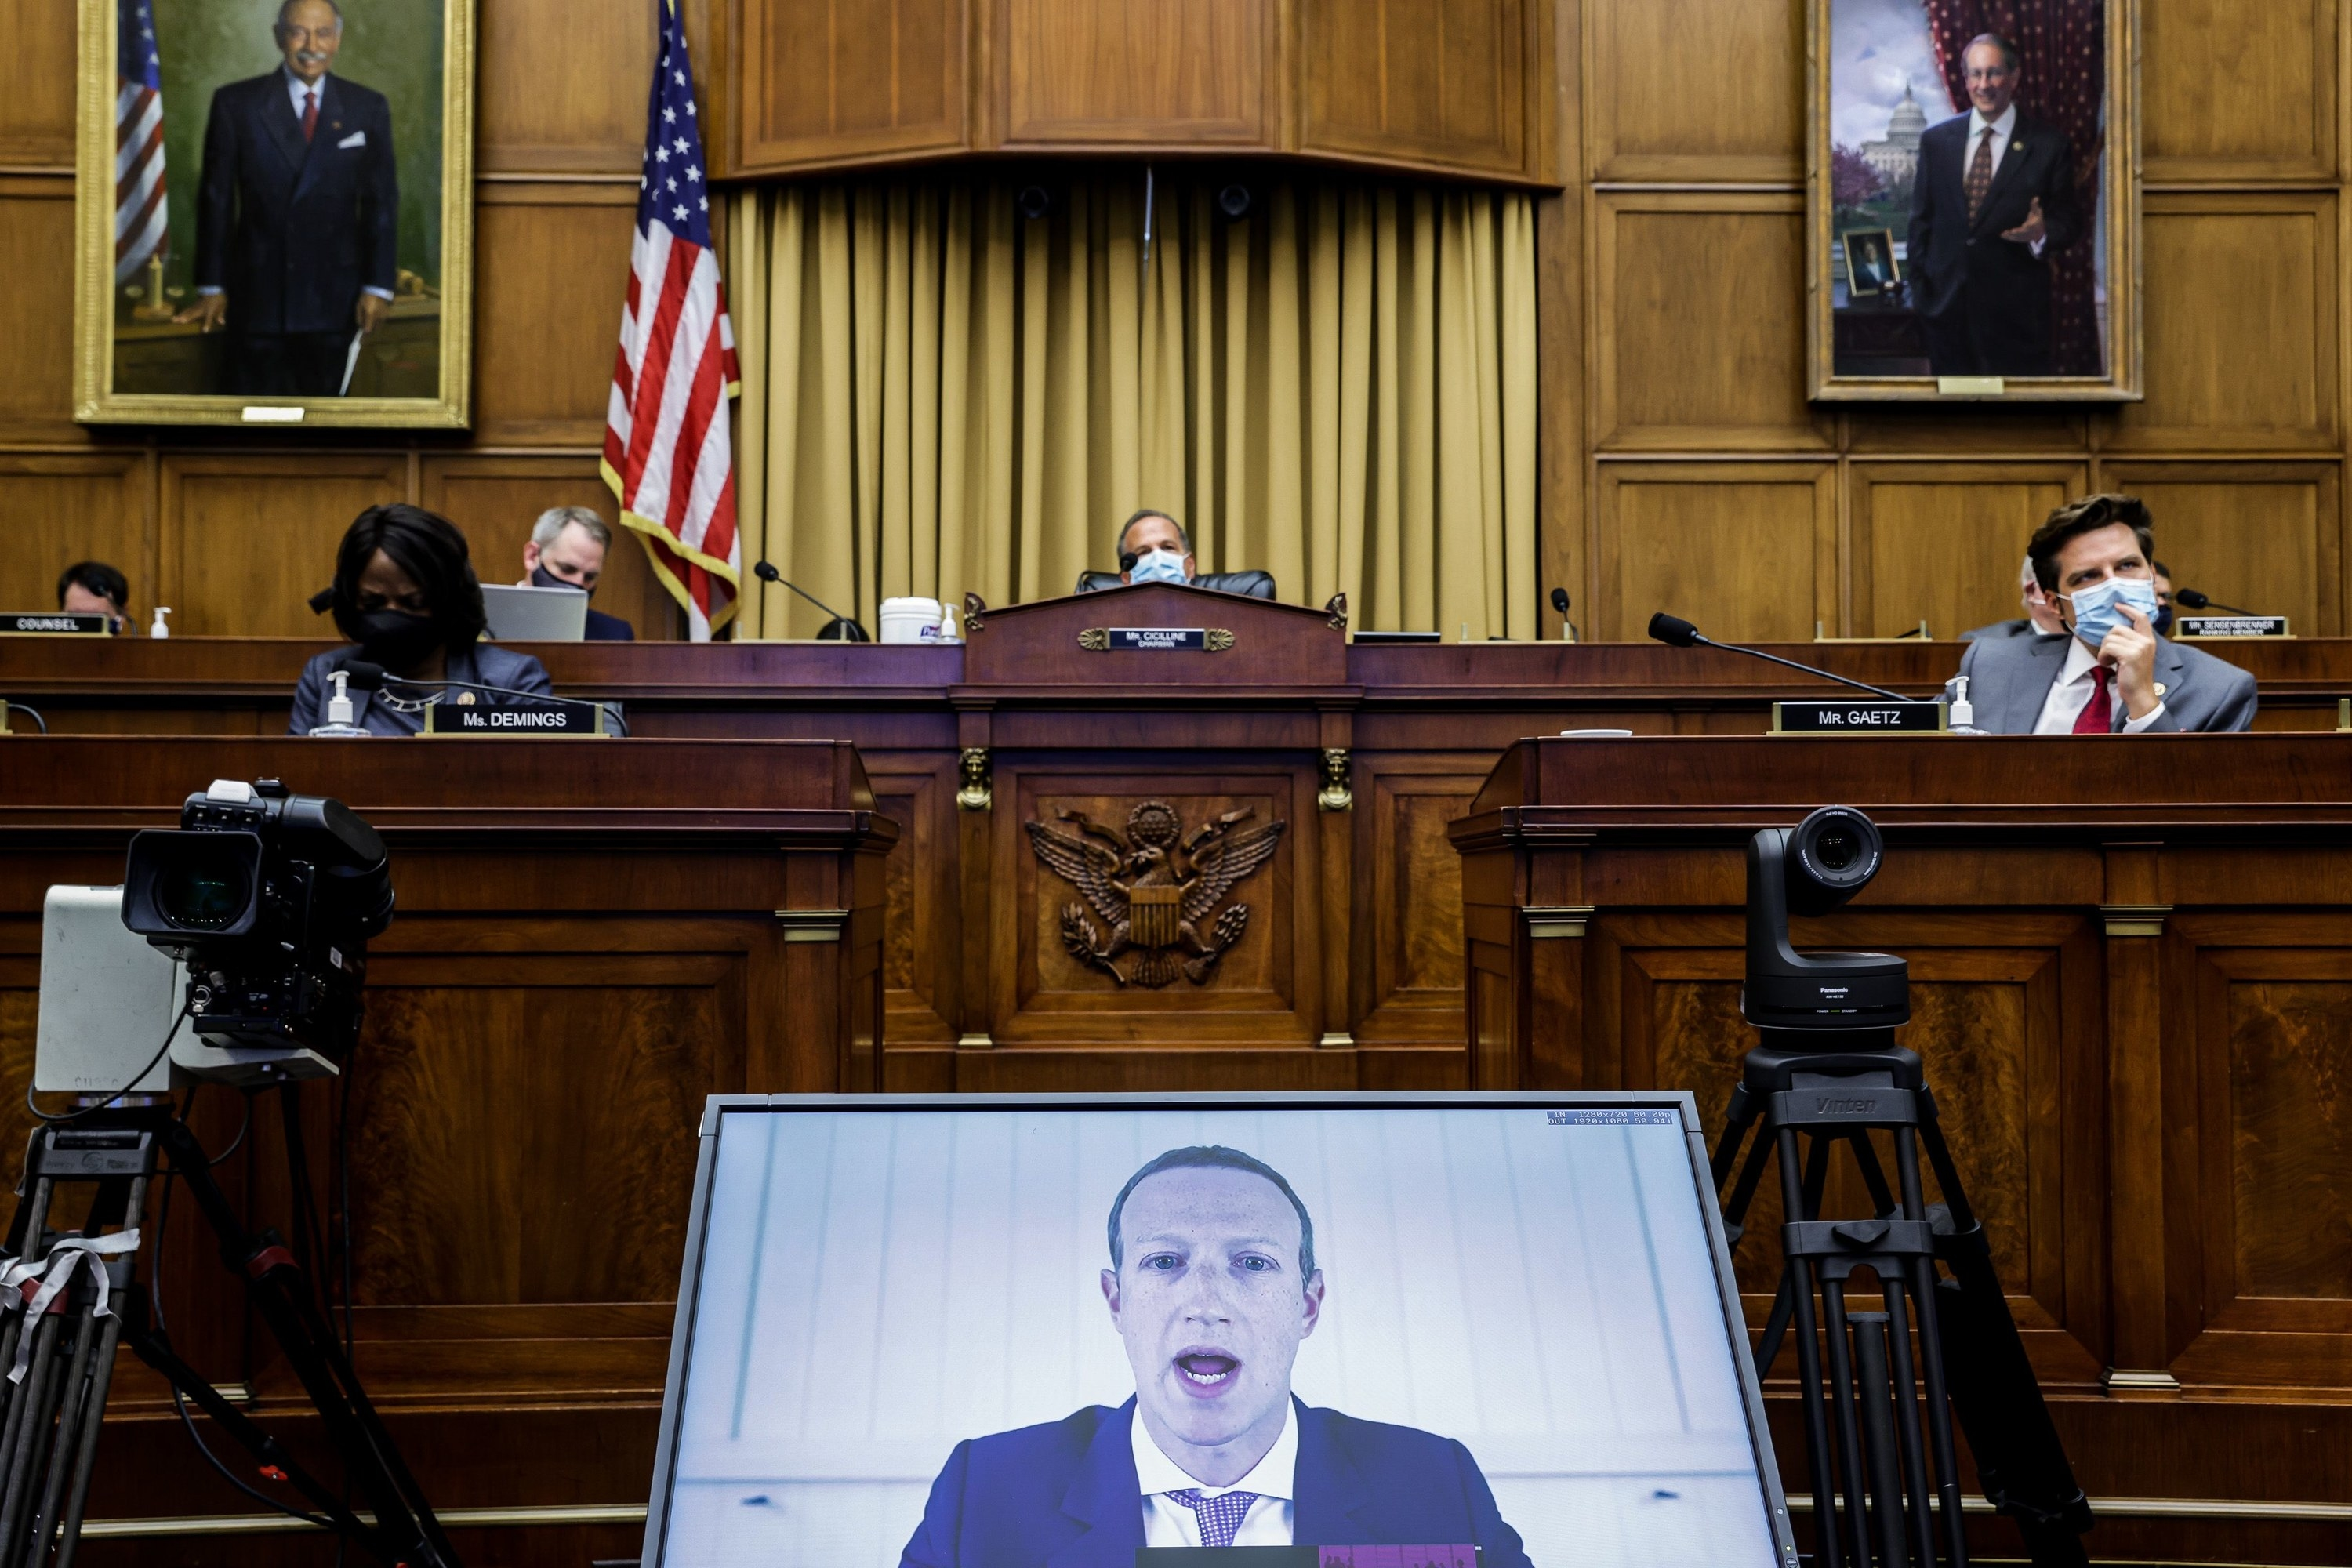 Mark Zuckerberg appears in a screen at the bottom; above, members of the House subcommittee sit and listen